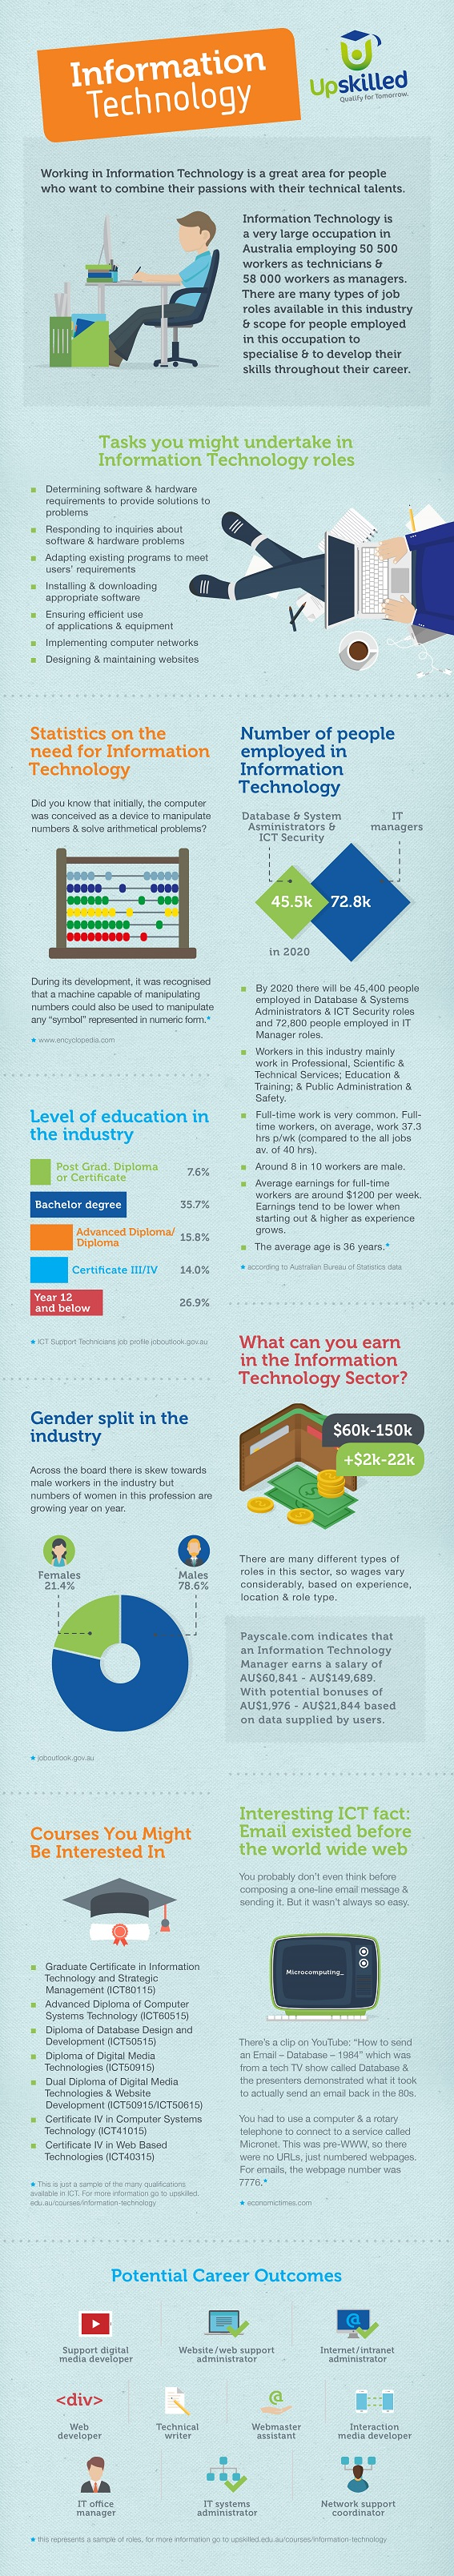 upskilled information technology infographic